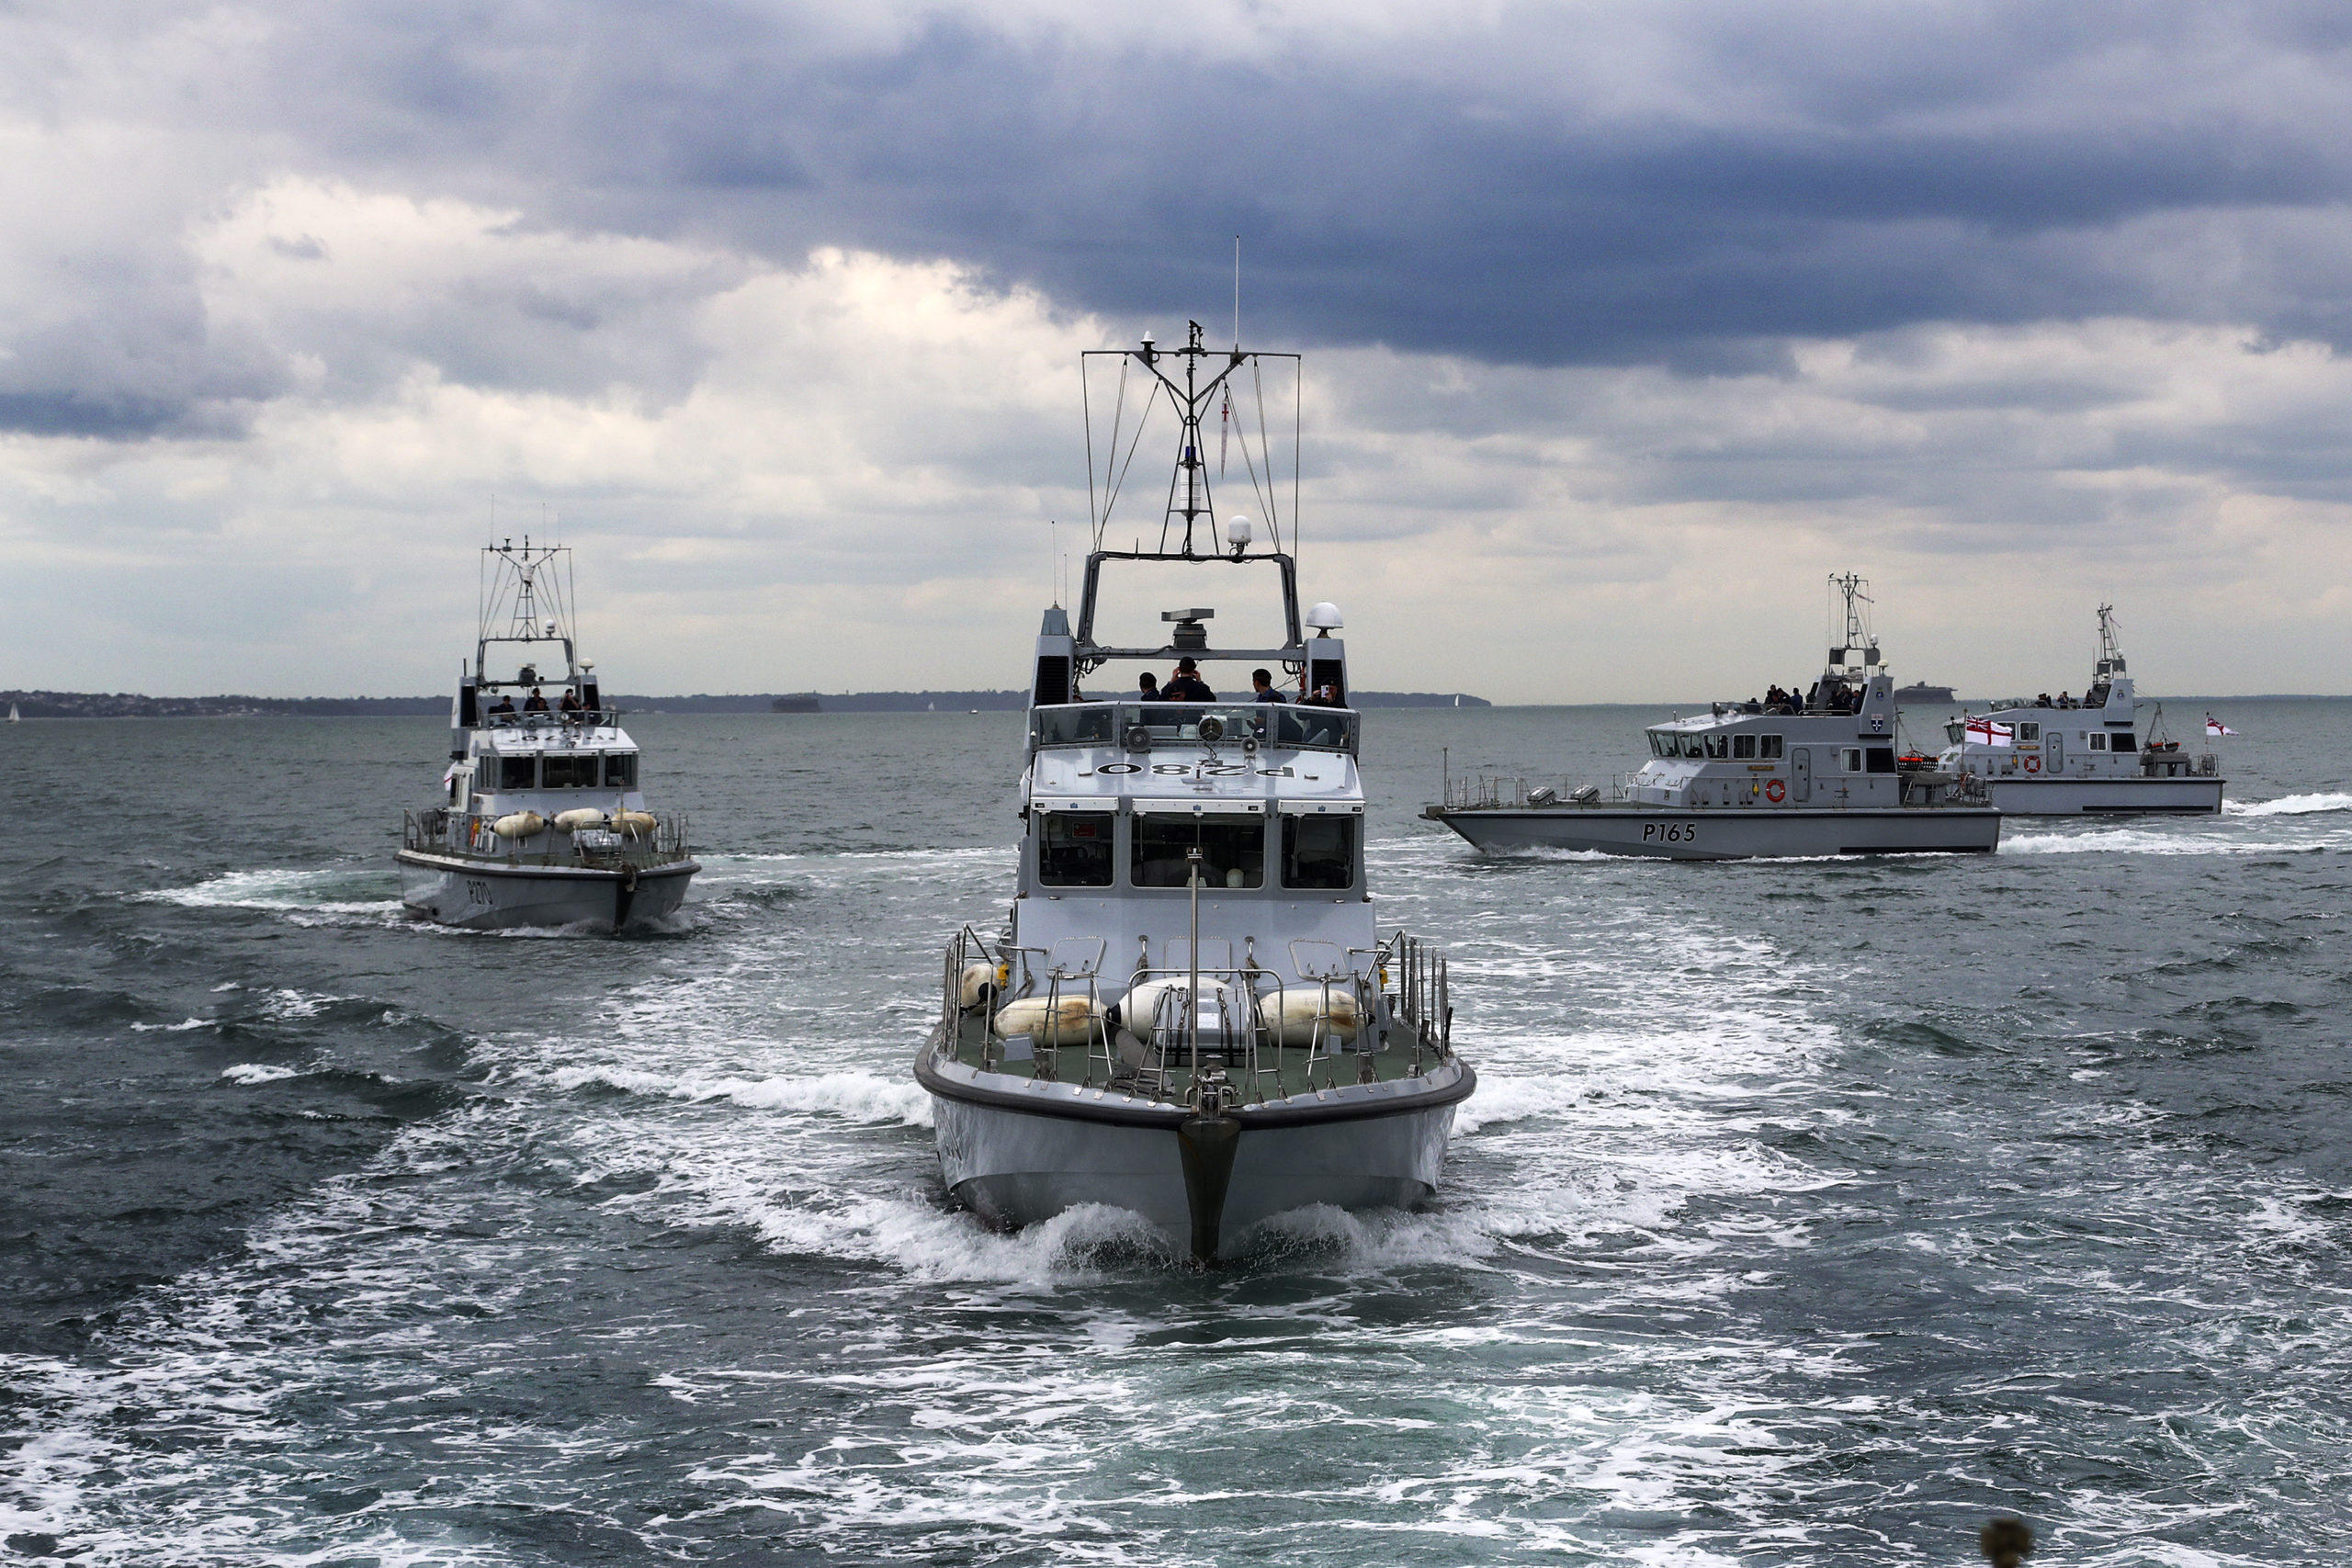 Four Archer Class P2000 Patrol Boats together at sea.